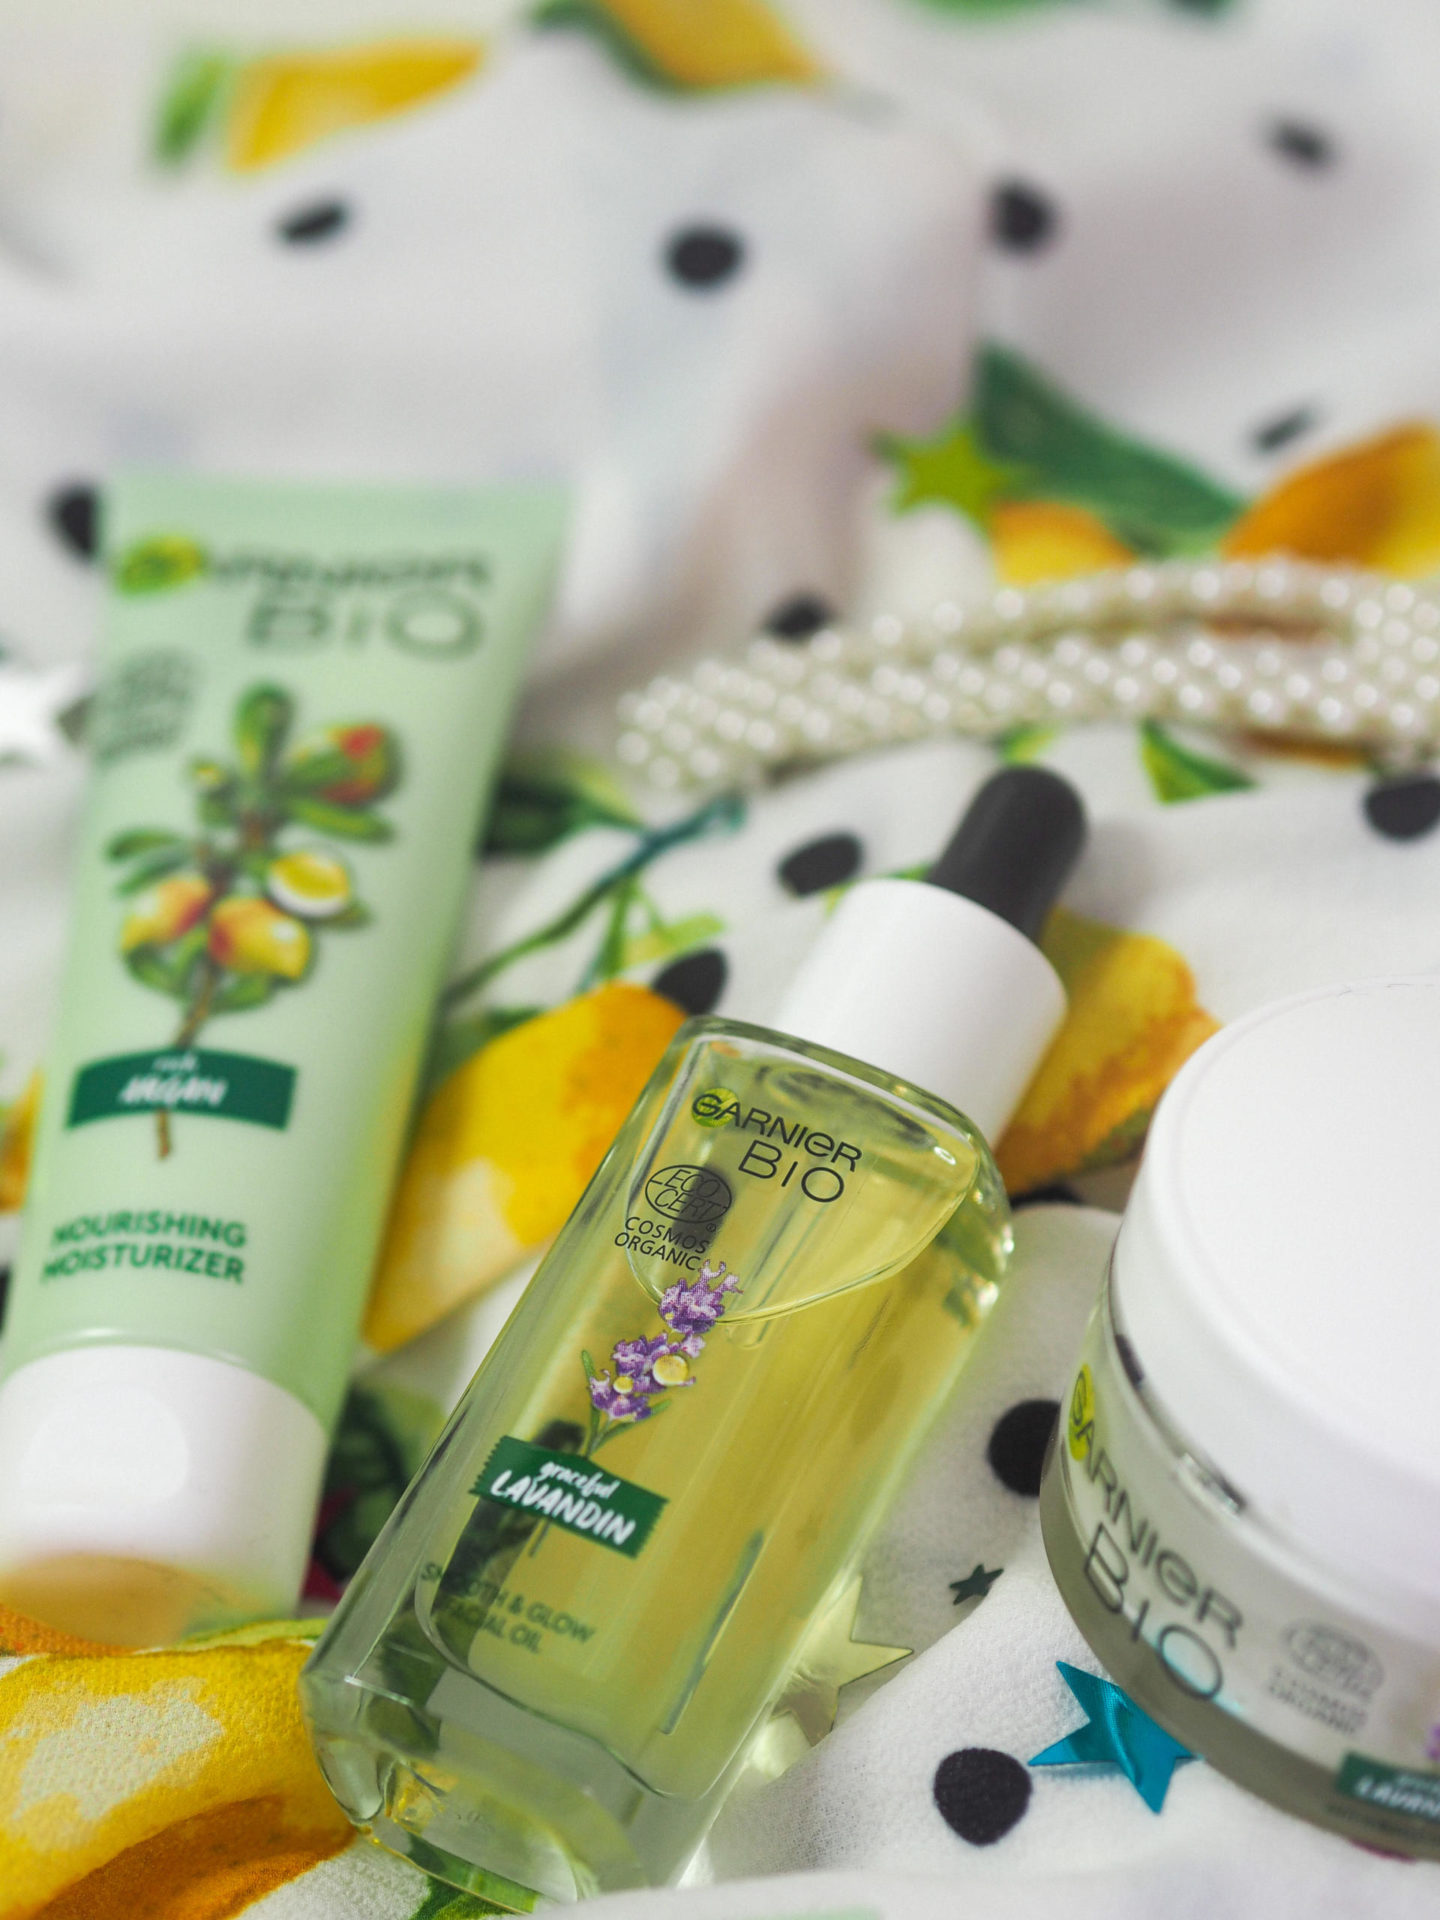 A First Look at the NEW Garnier Bio Organic Skincare Range - Rachel Nicole UK Blogger